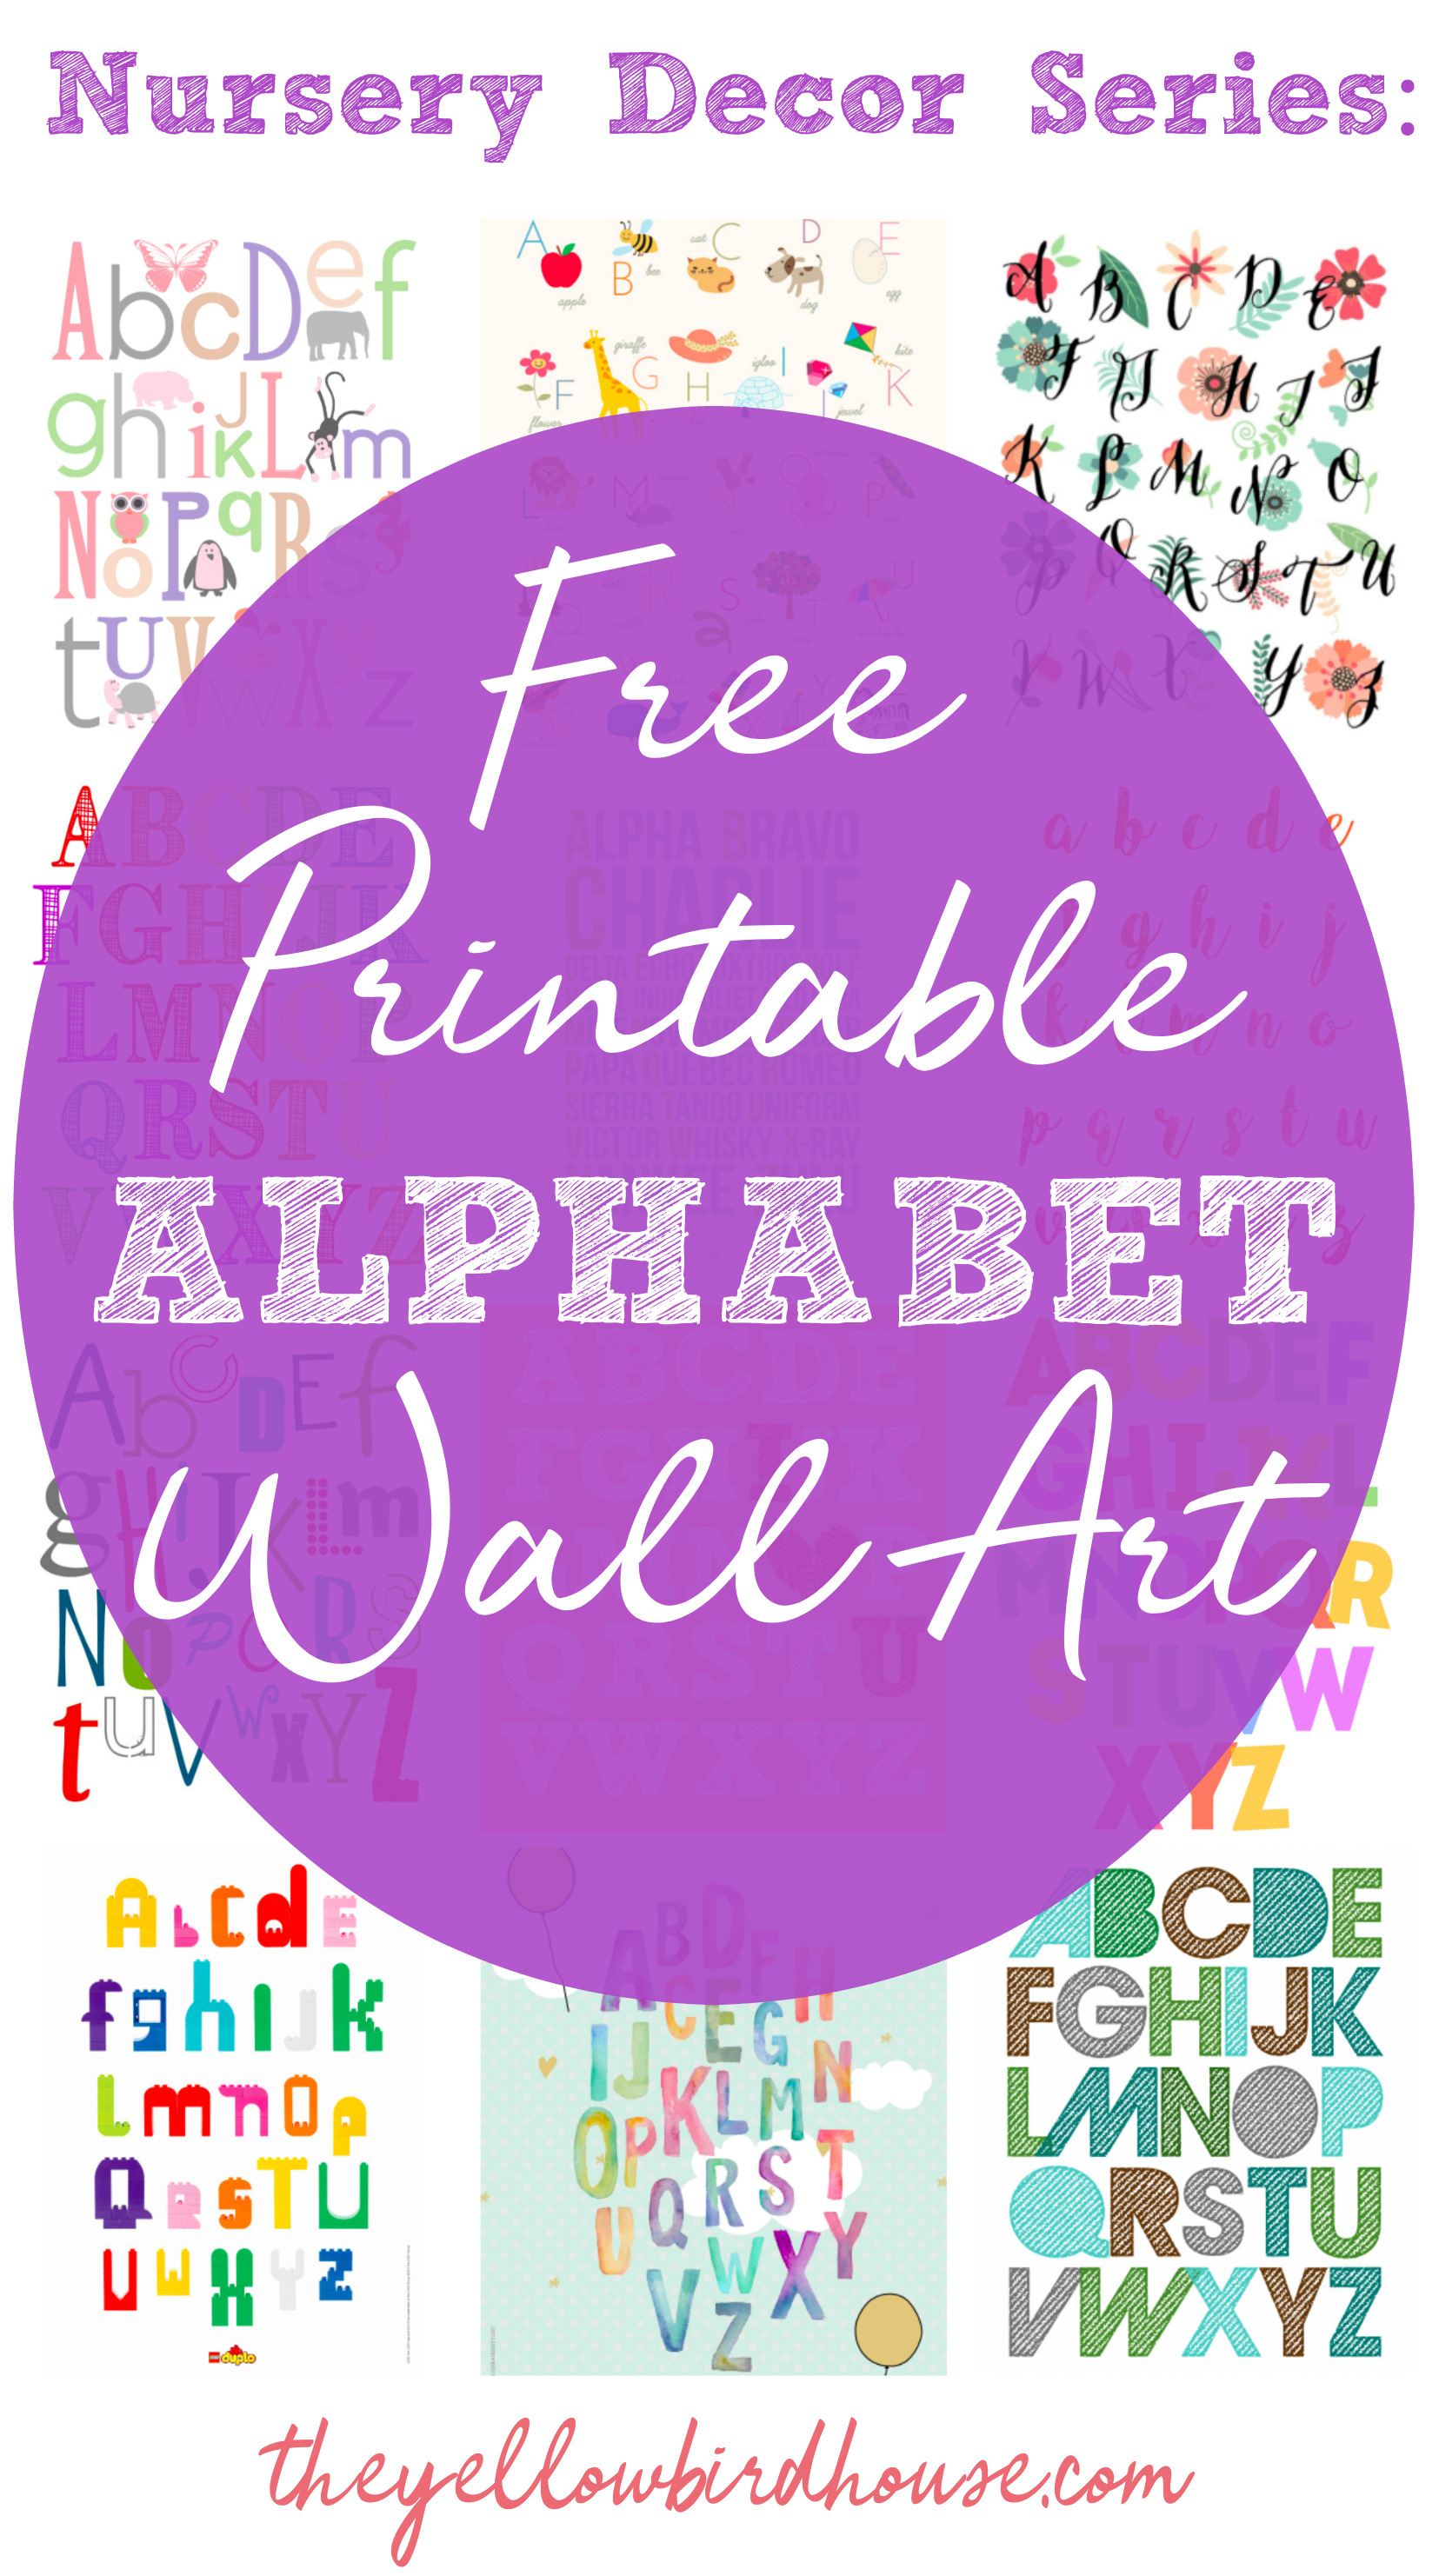 Nursery Decor Series: 19 Free Printable Alphabet Wall Art Pieces - Free Printable Decor